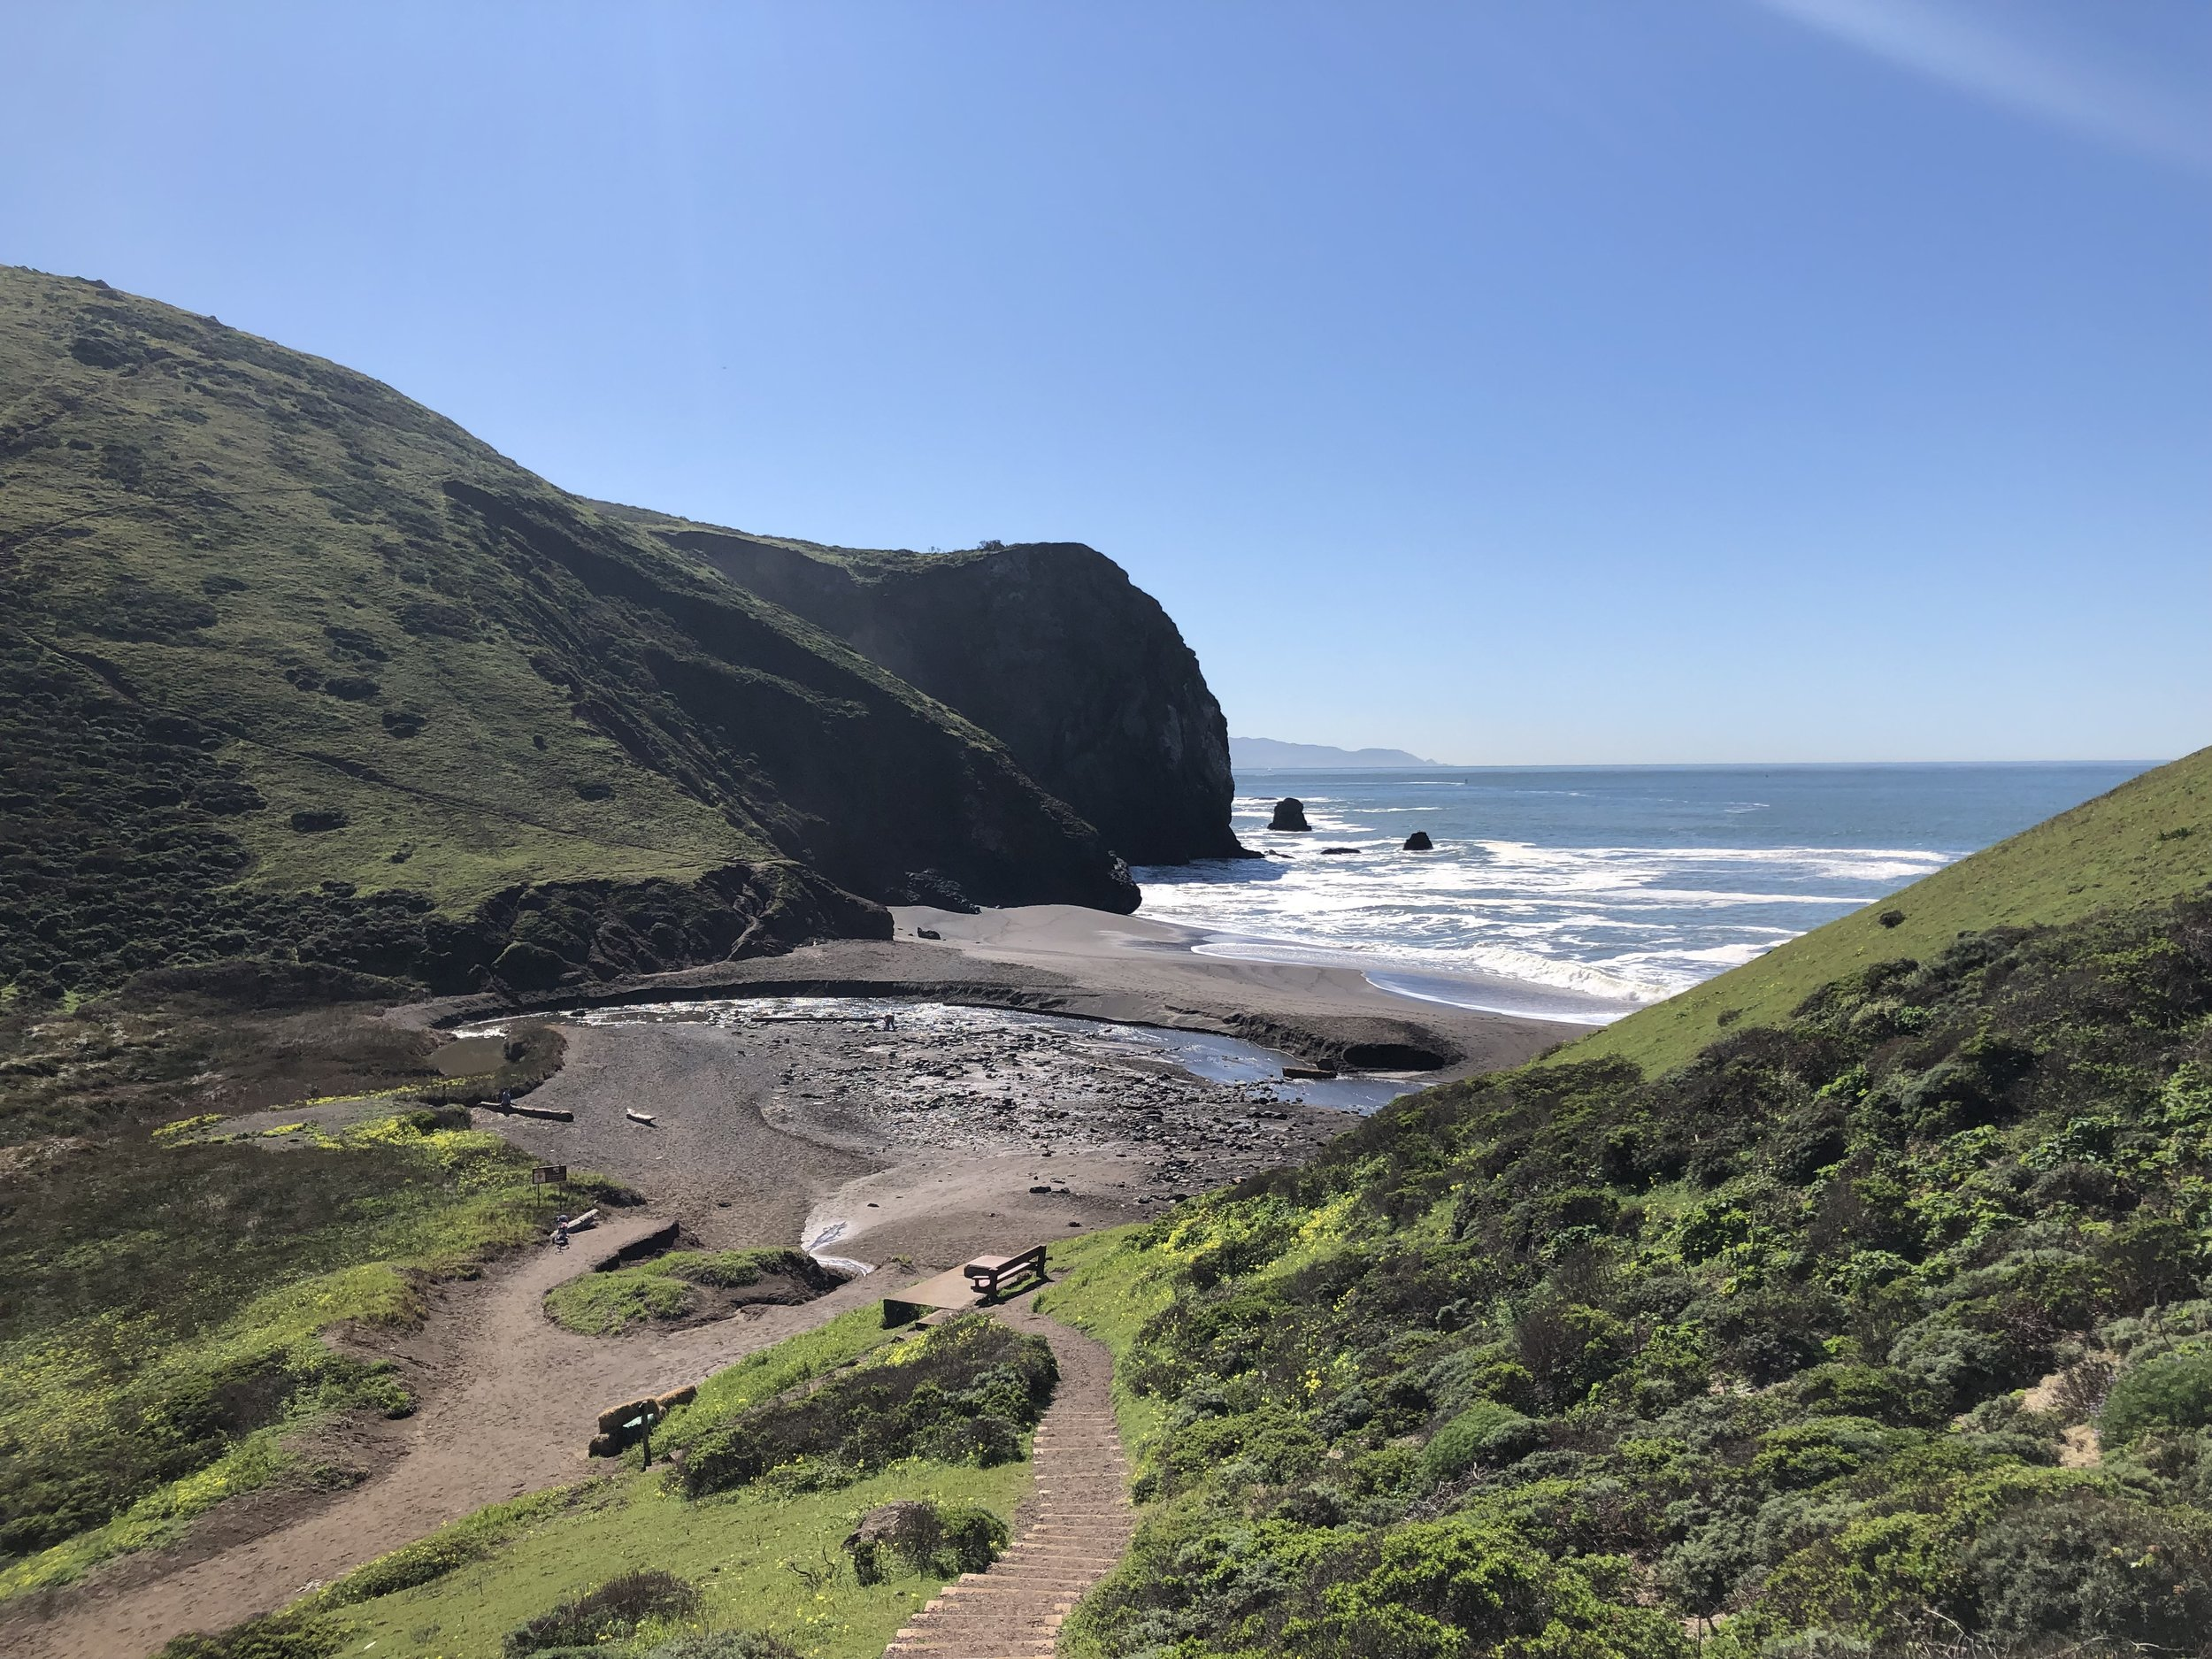 Tennessee Valley's pocket beach